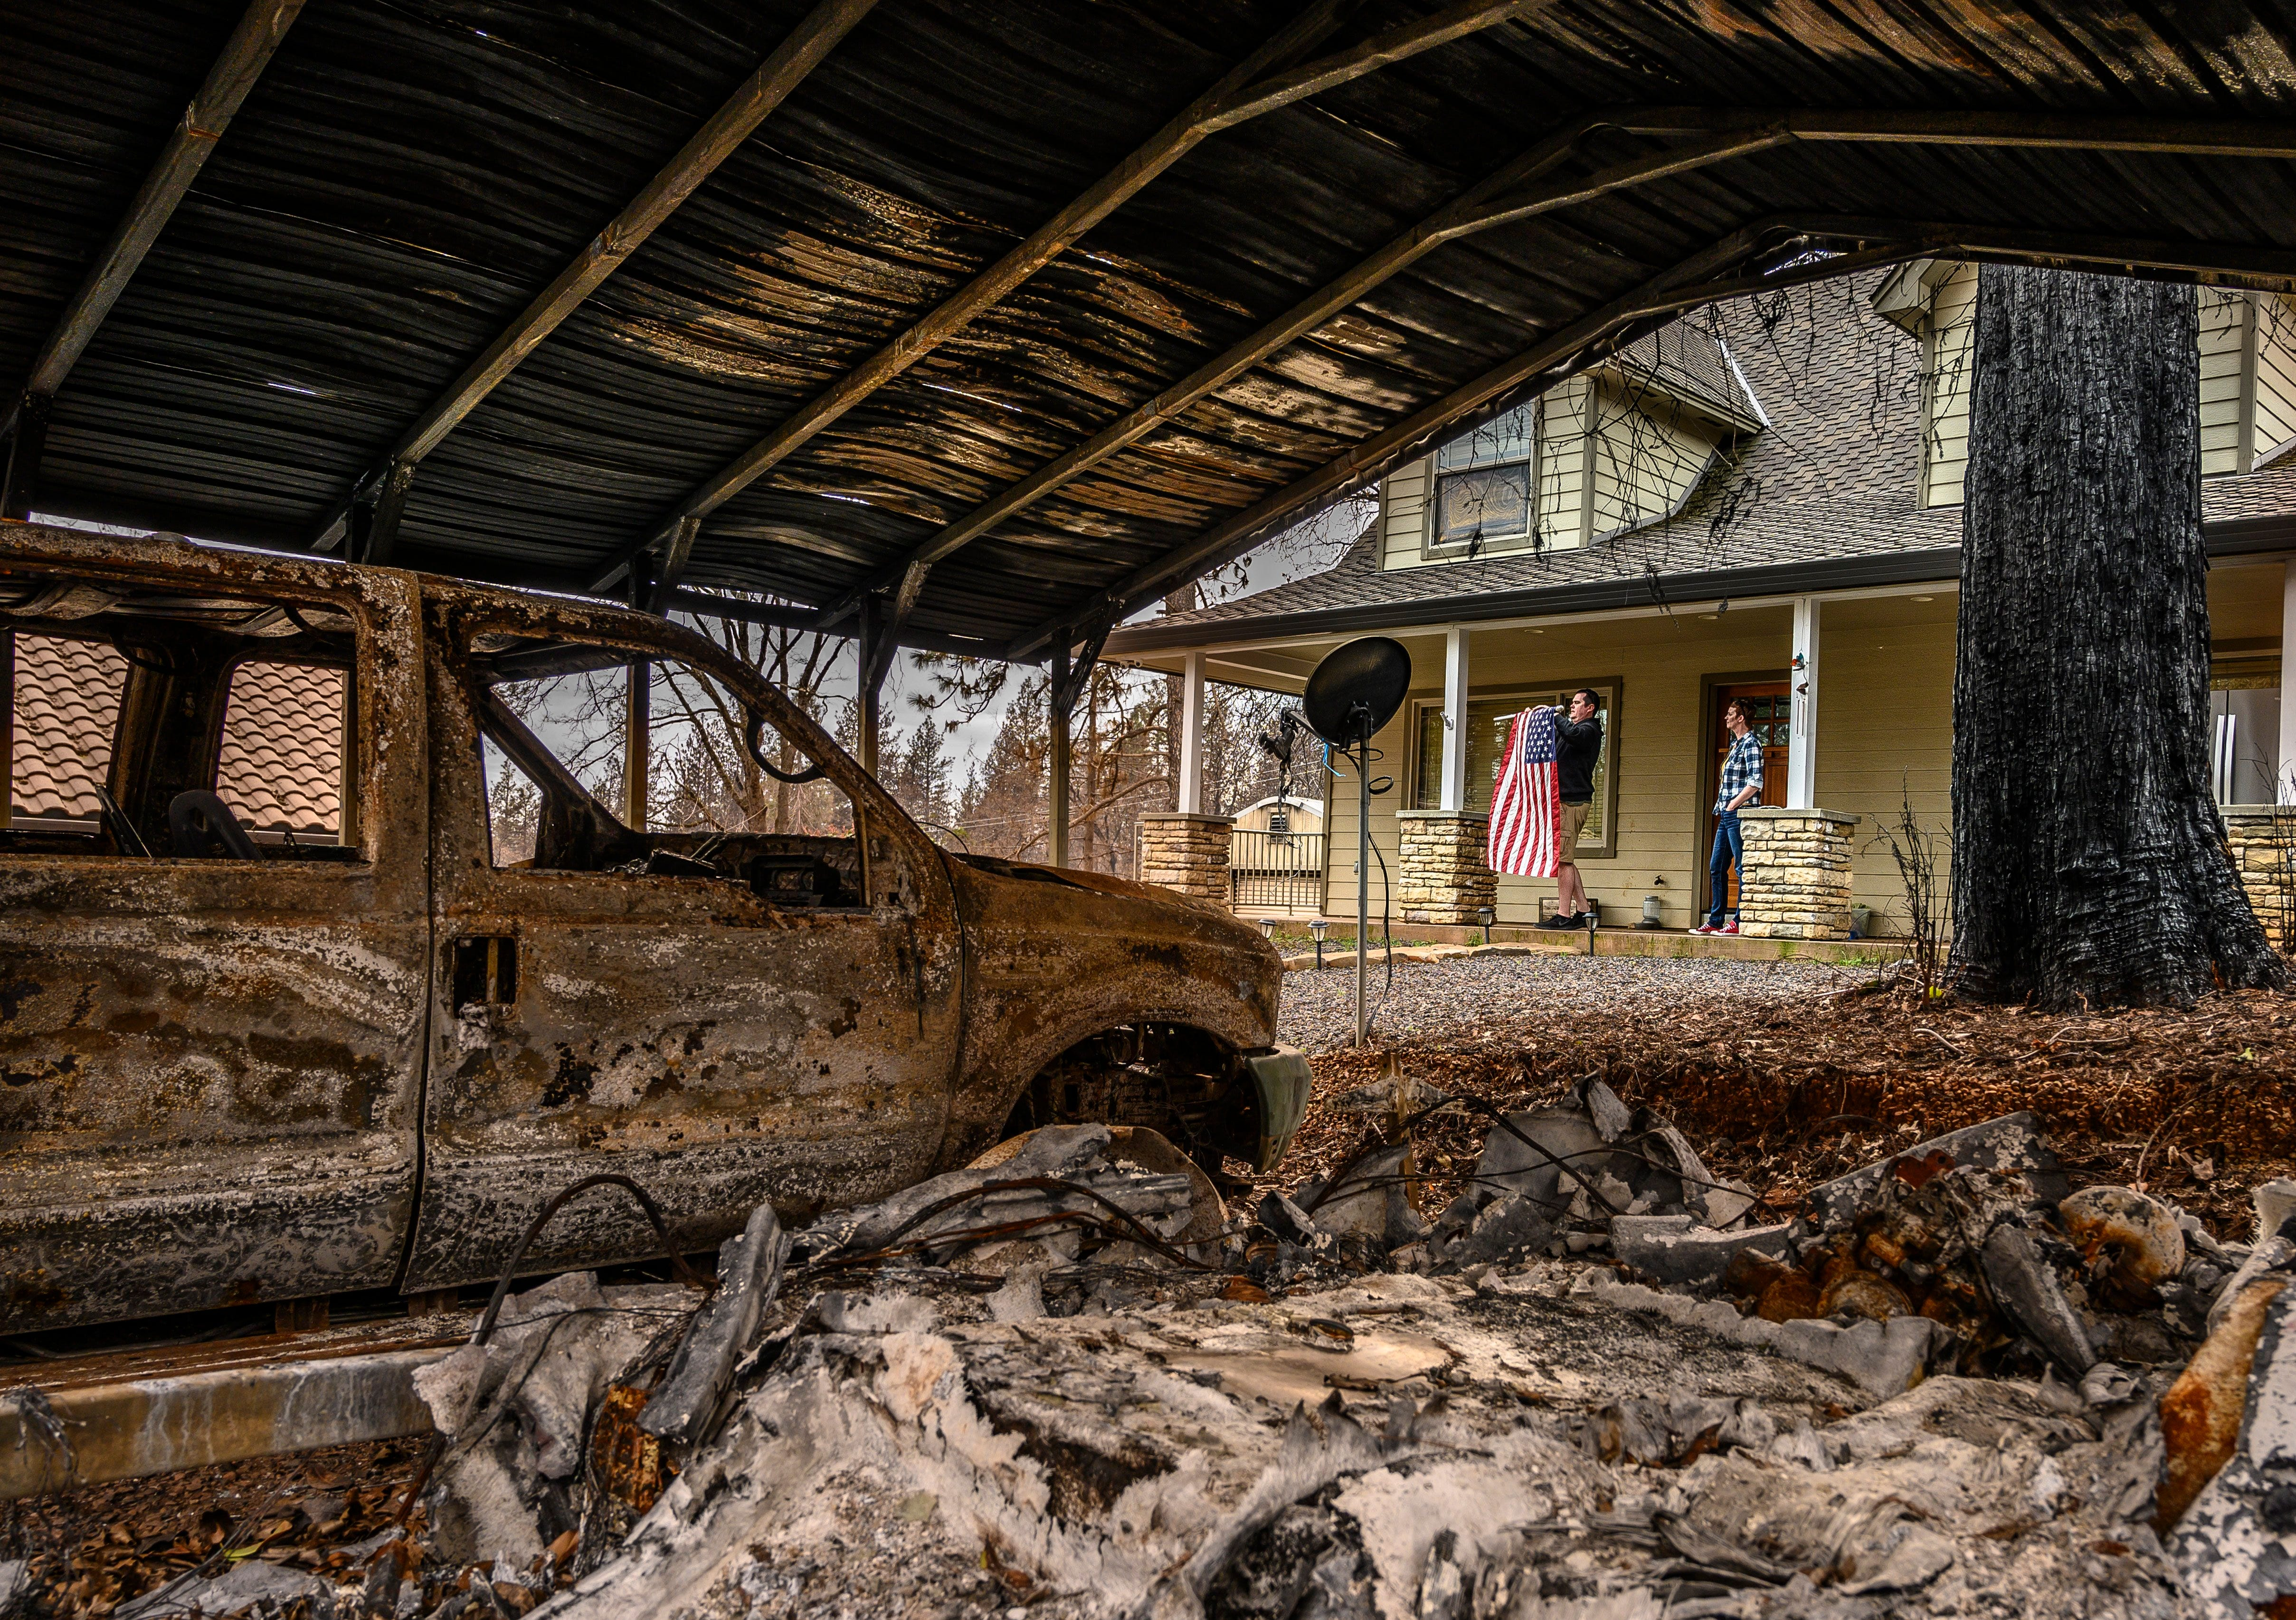 Sean and Dawn Herr collect an American flag on Tuesday, March 19, 2019, that survived the Camp Fire – along with their Paradise home. A shed containing the family vehicle and a boat burned, along with nearby homes. The Herr's home was built in 2010, and the family credits its survival to its construction features and their attention to defensible space.